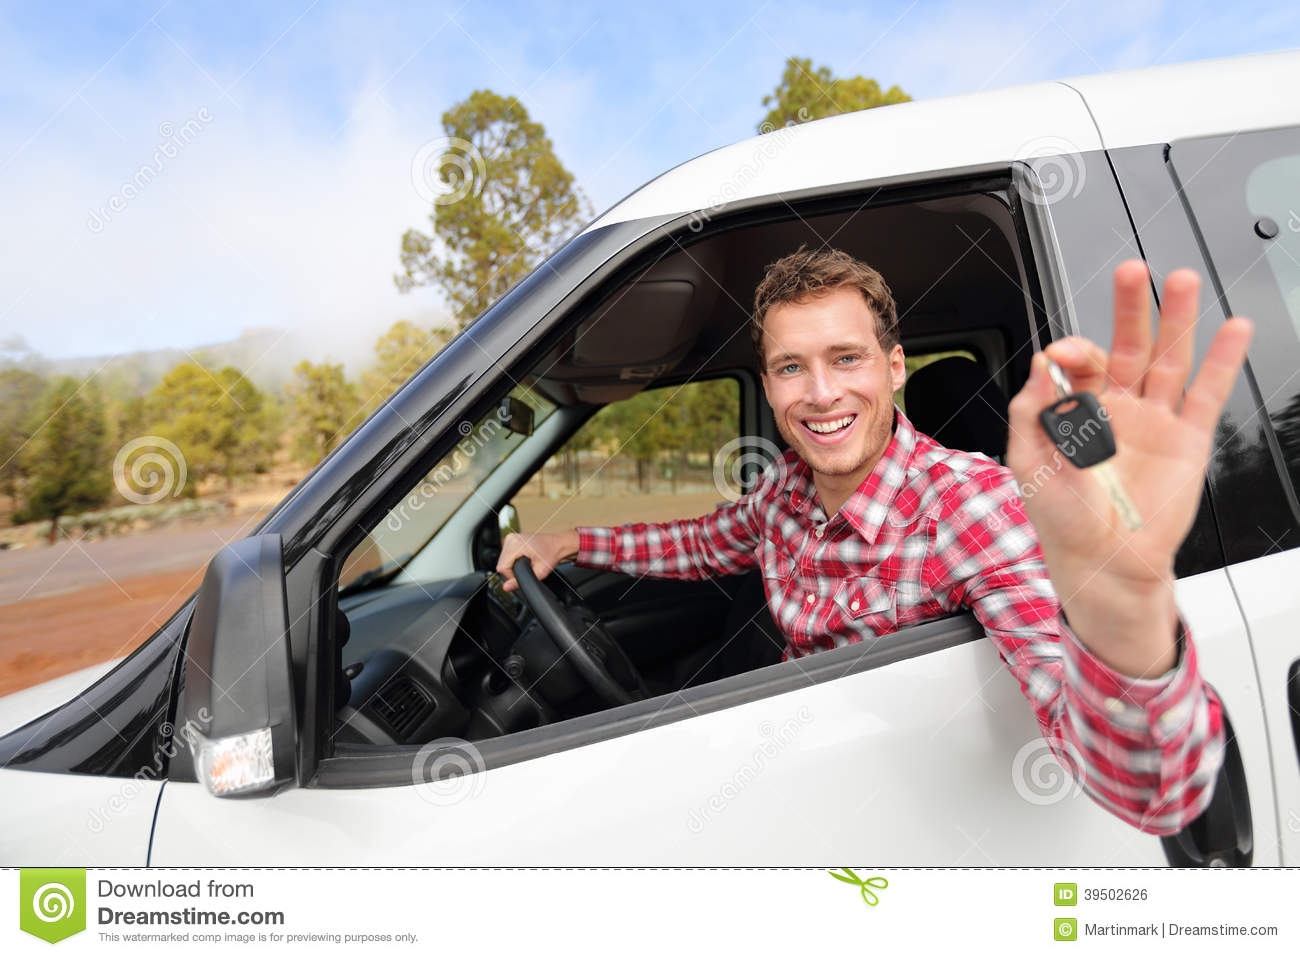 New cars - man driving car showing car keys happy